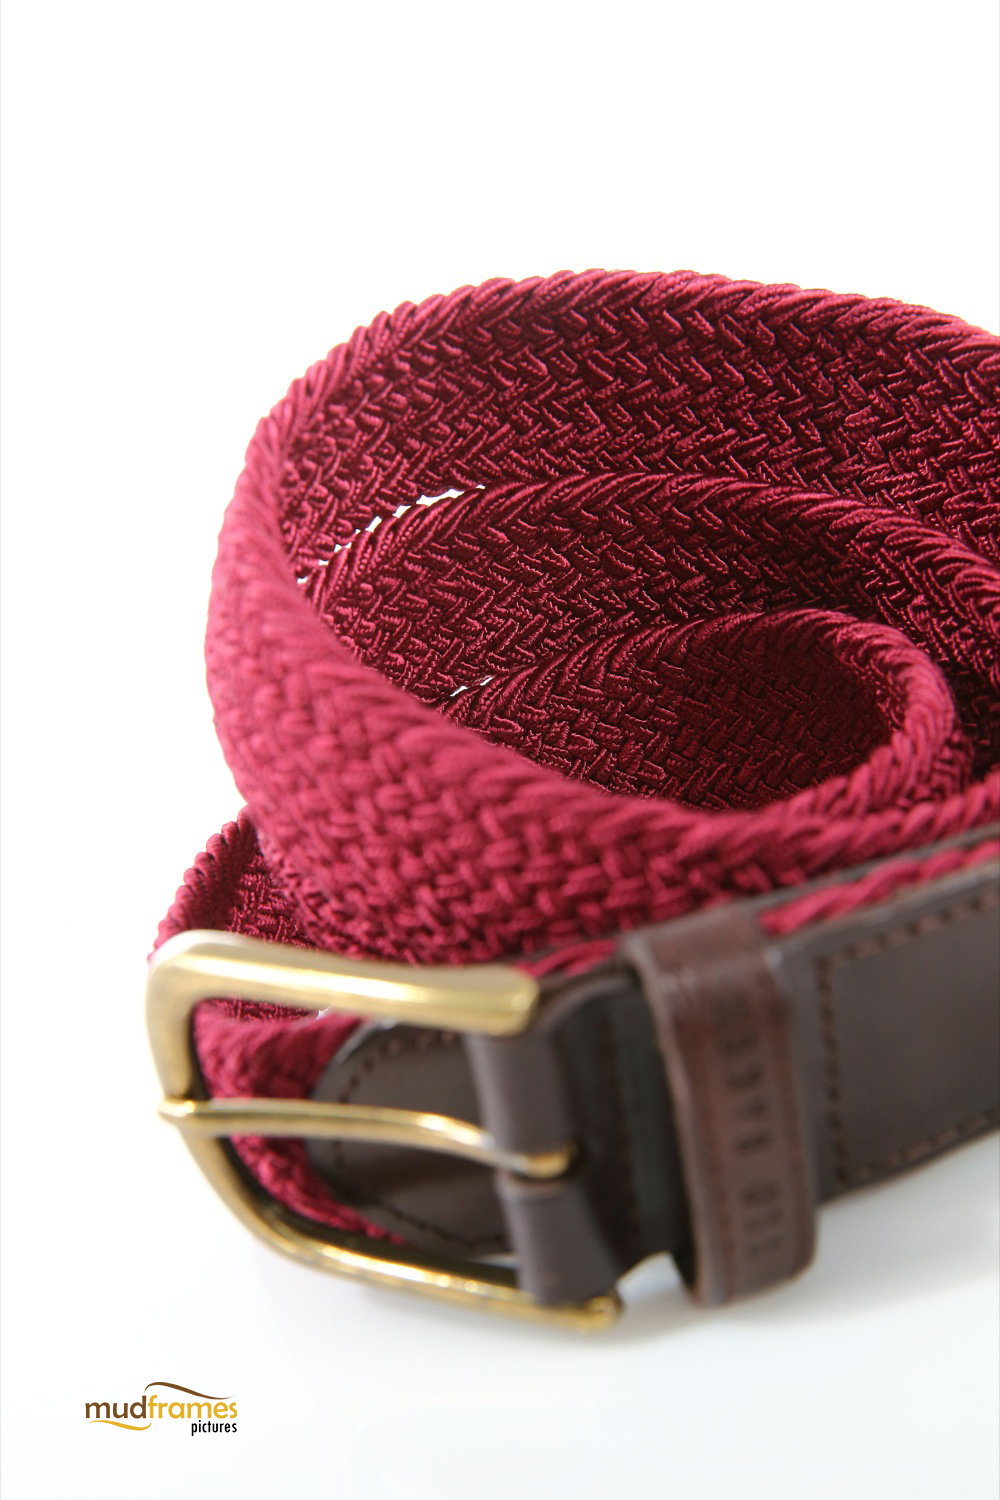 Red Ted Baker belt on white background